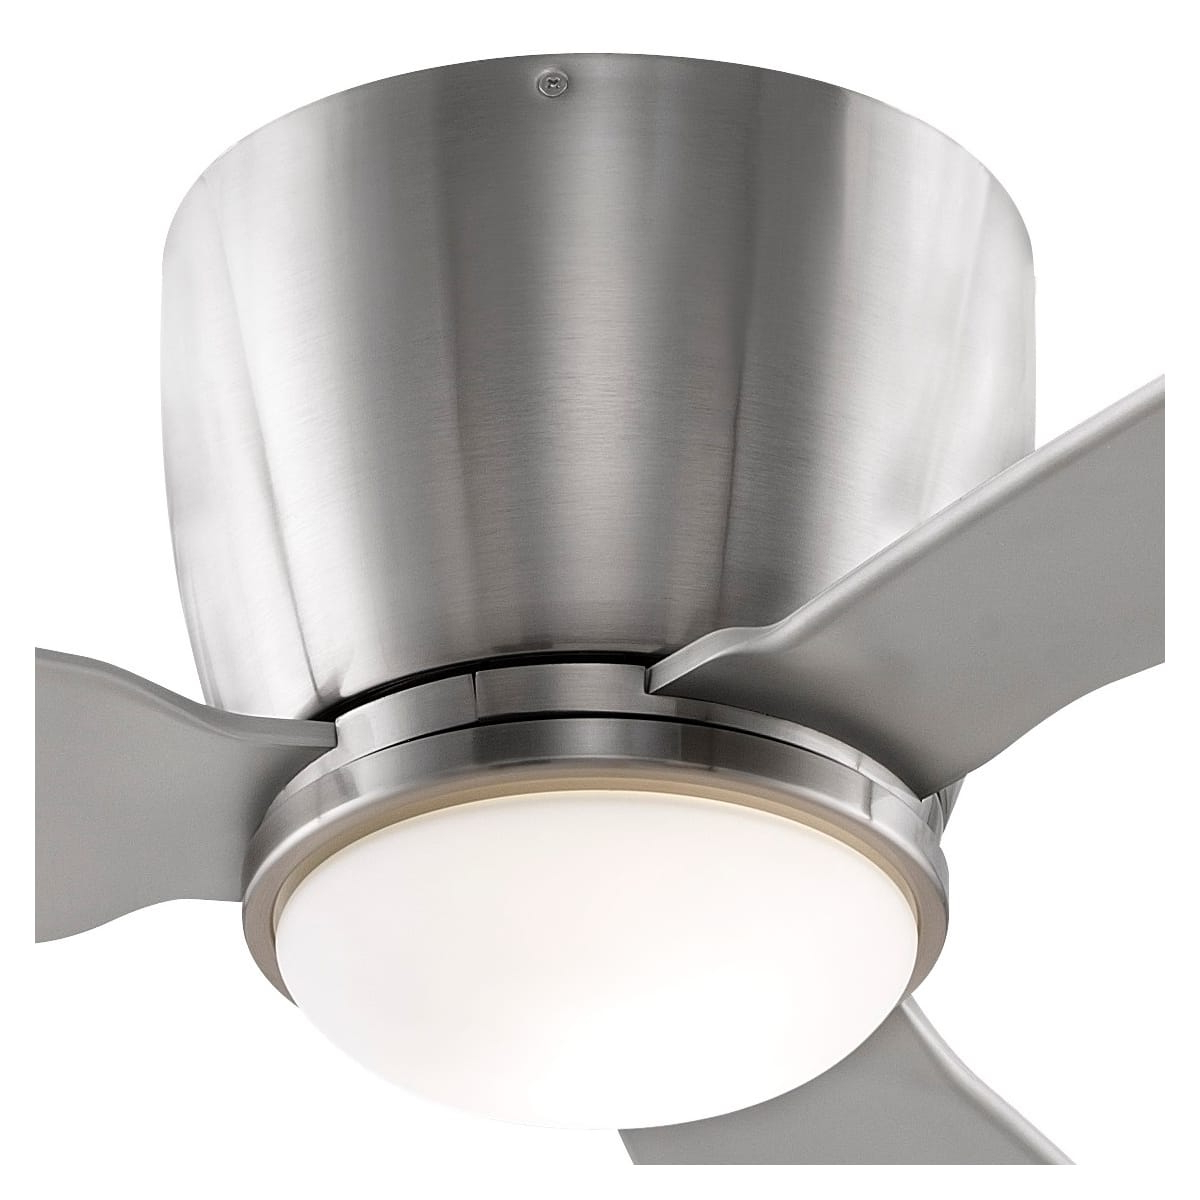 Fanimation Embrace 44 For Well Known Embrace 3 Blade Ceiling Fans (View 13 of 20)